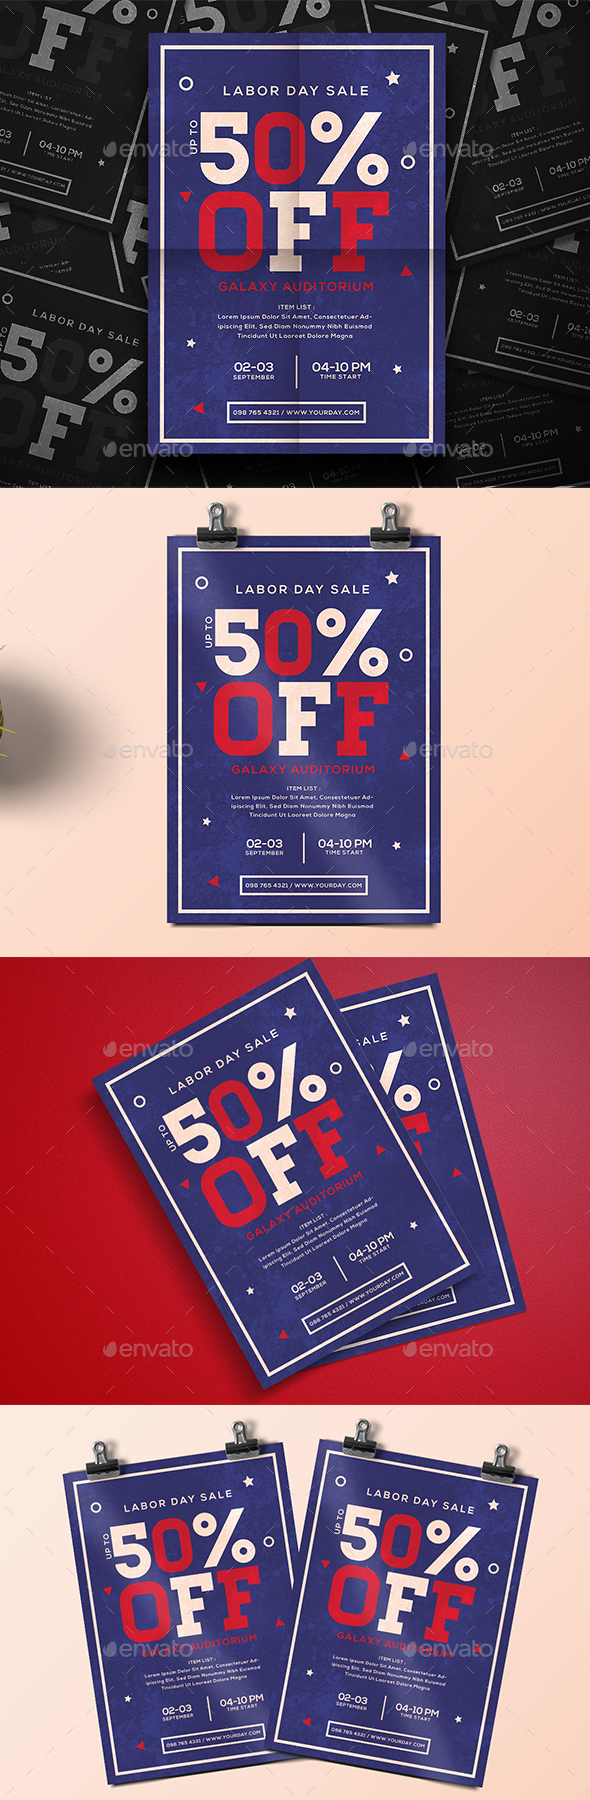 Labor Day Sale - Events Flyers